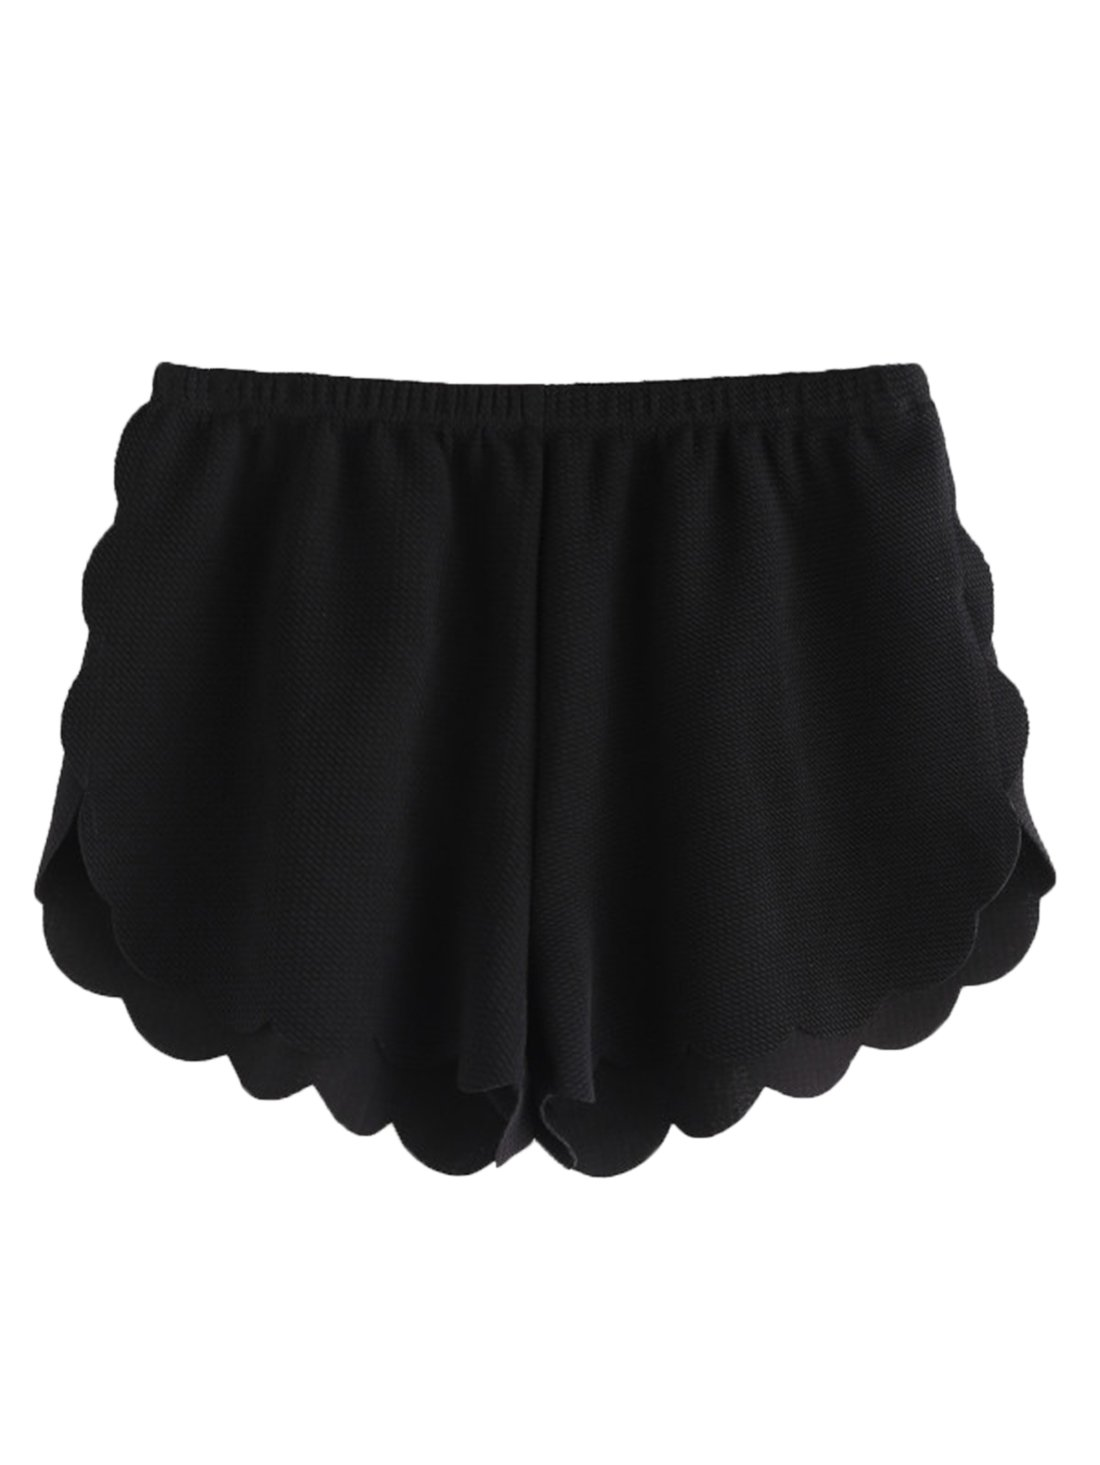 MakeMeChic Women's Solid Elastic Waist Scalloped Casual Fitted Shorts Black M